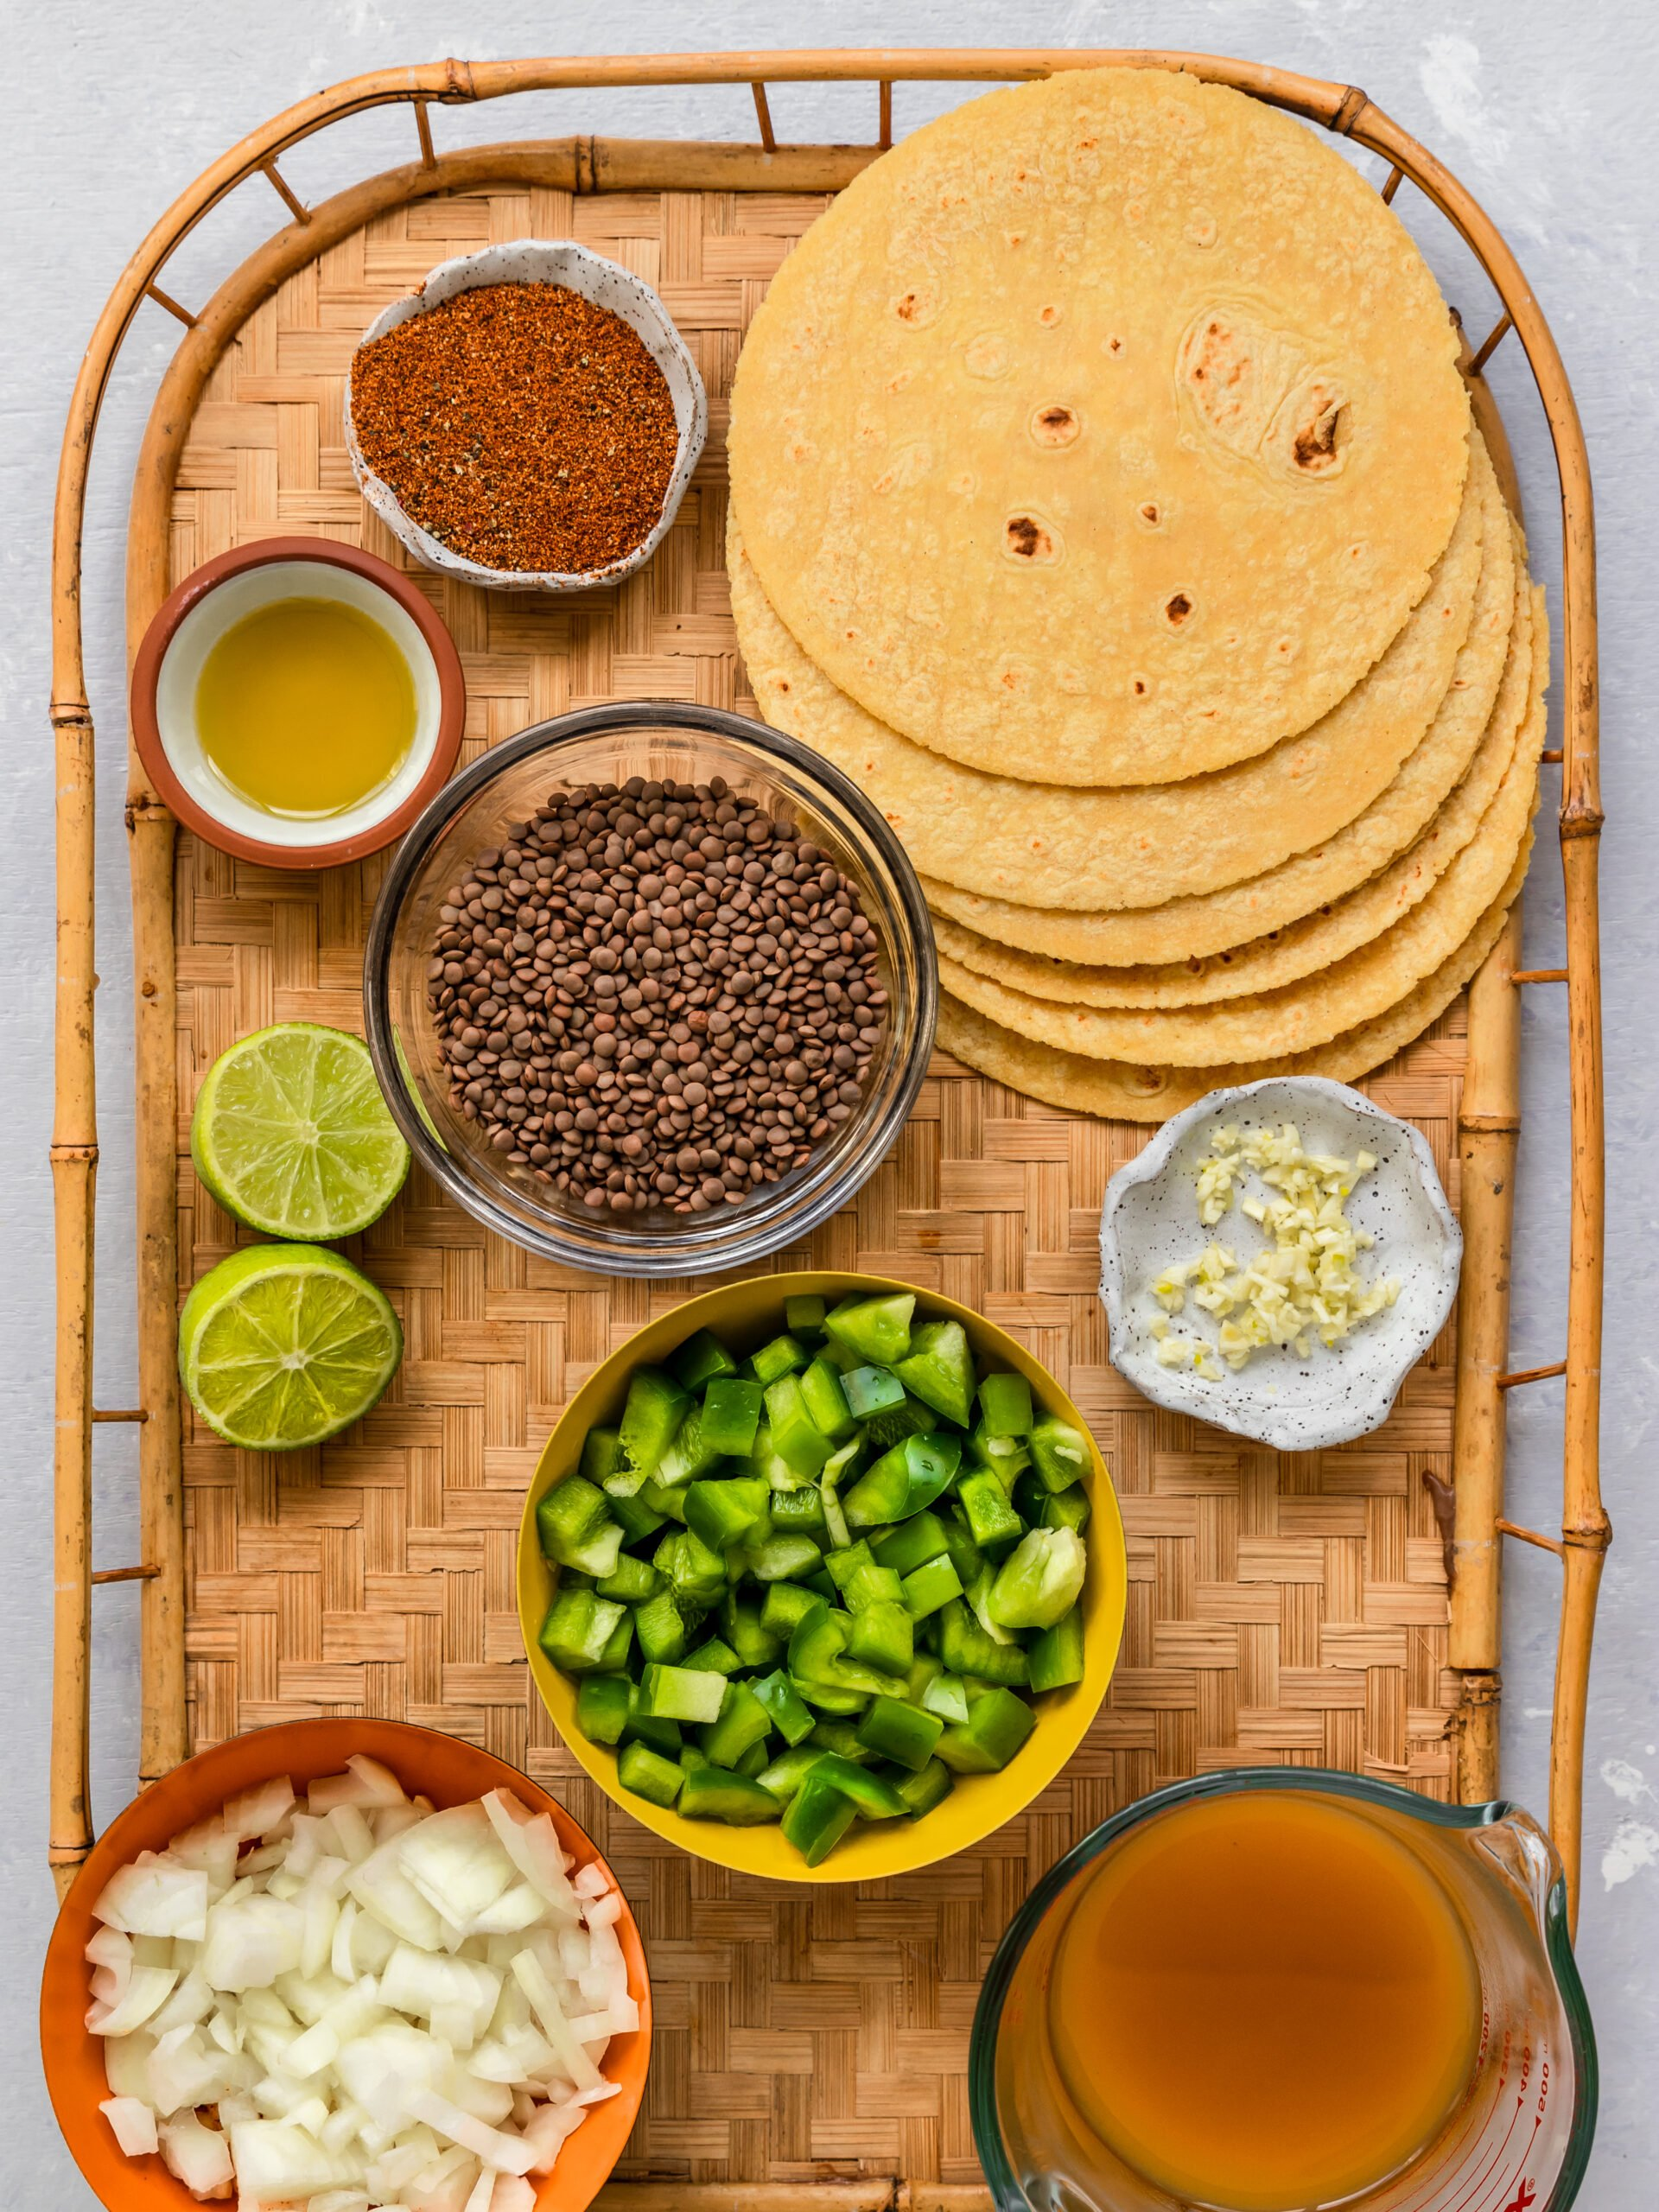 flour tortillas, lentils, oil, taco seasoning, peppers, onions, garlic, veggie broth, and lime juice on tray